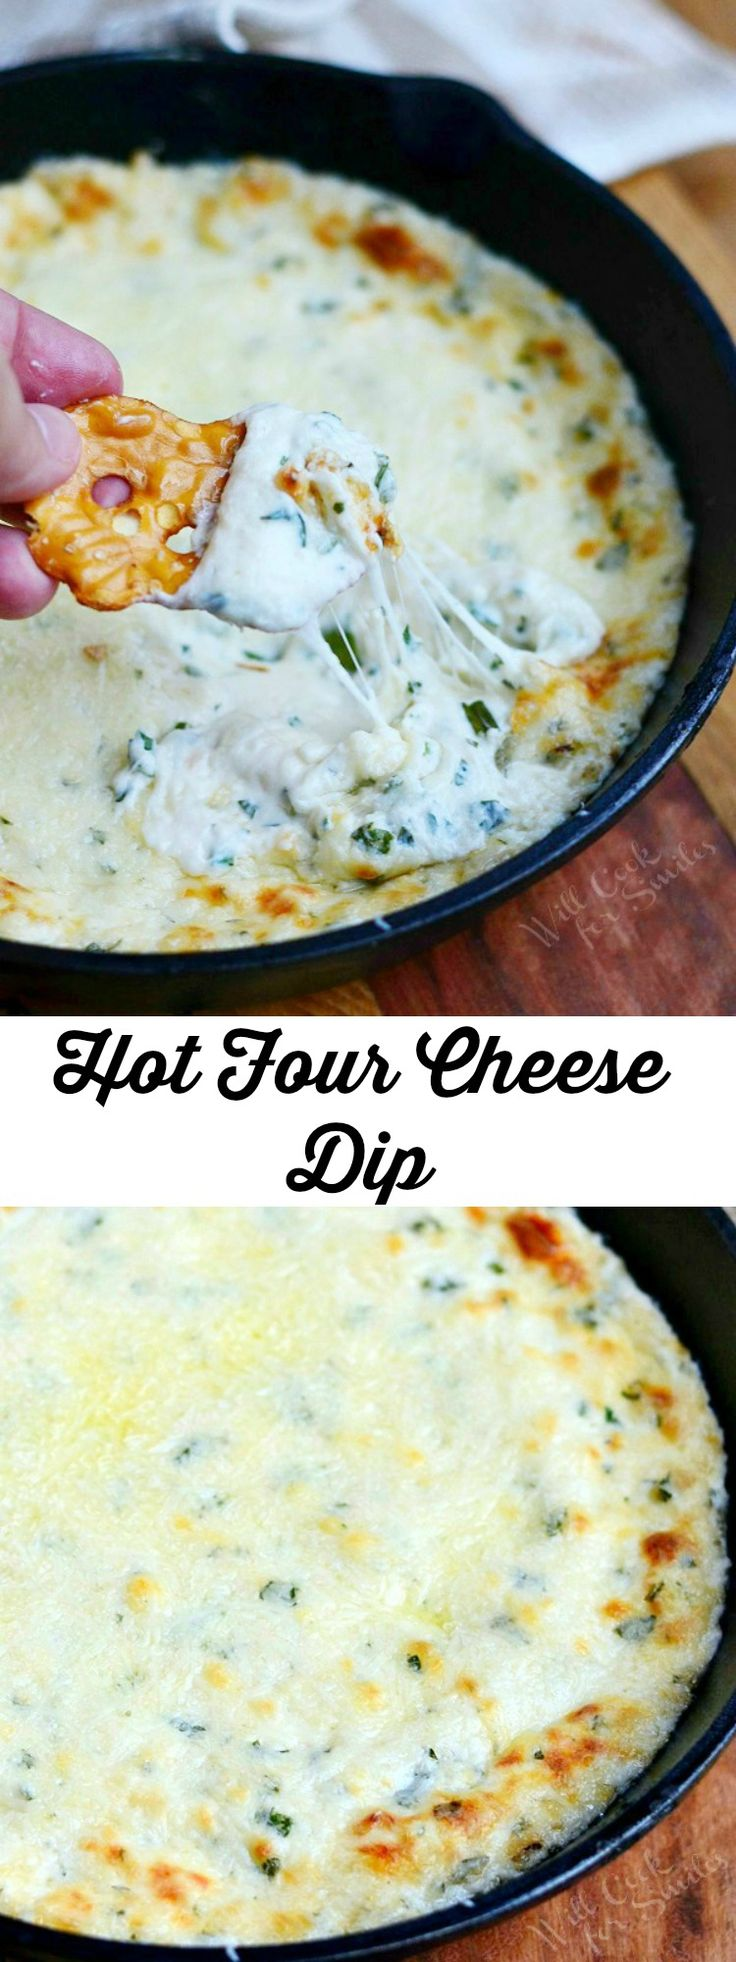 Hot Four Cheese Dip | from willcookforsmiles.com (Melted Cheese Chips)